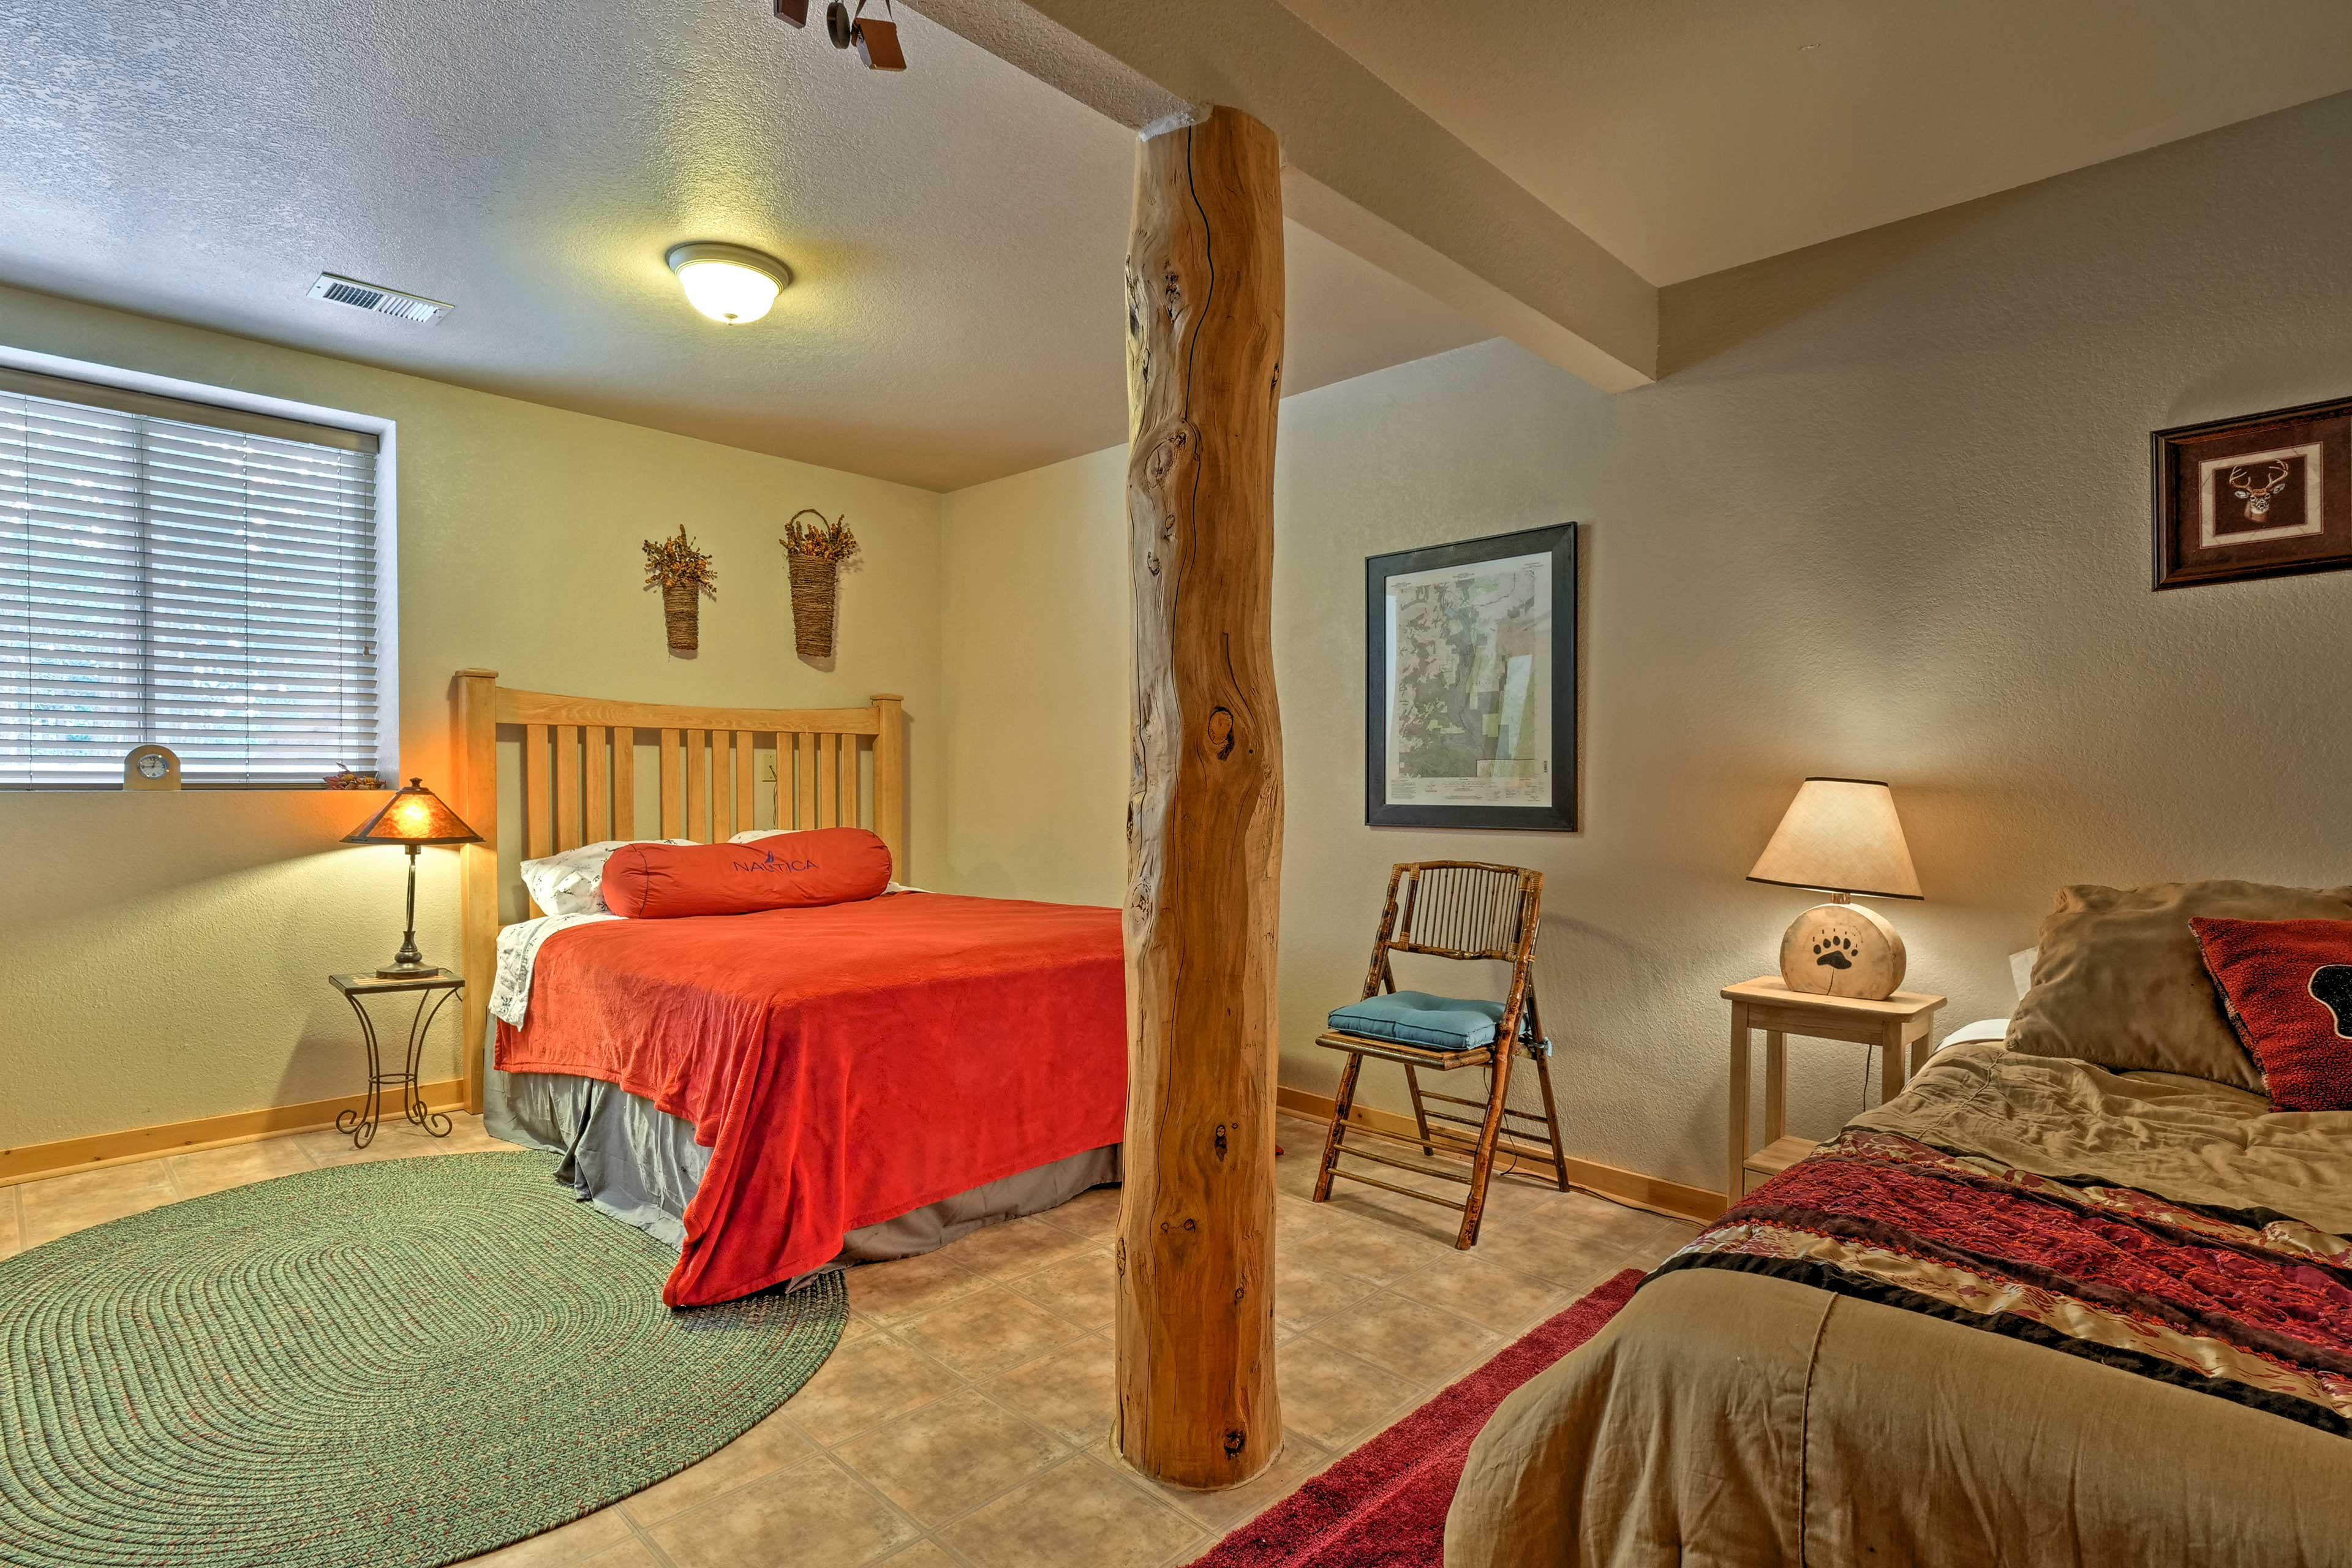 Enjoy peaceful slumbers on a queen bed or twin bed in the second bedroom.